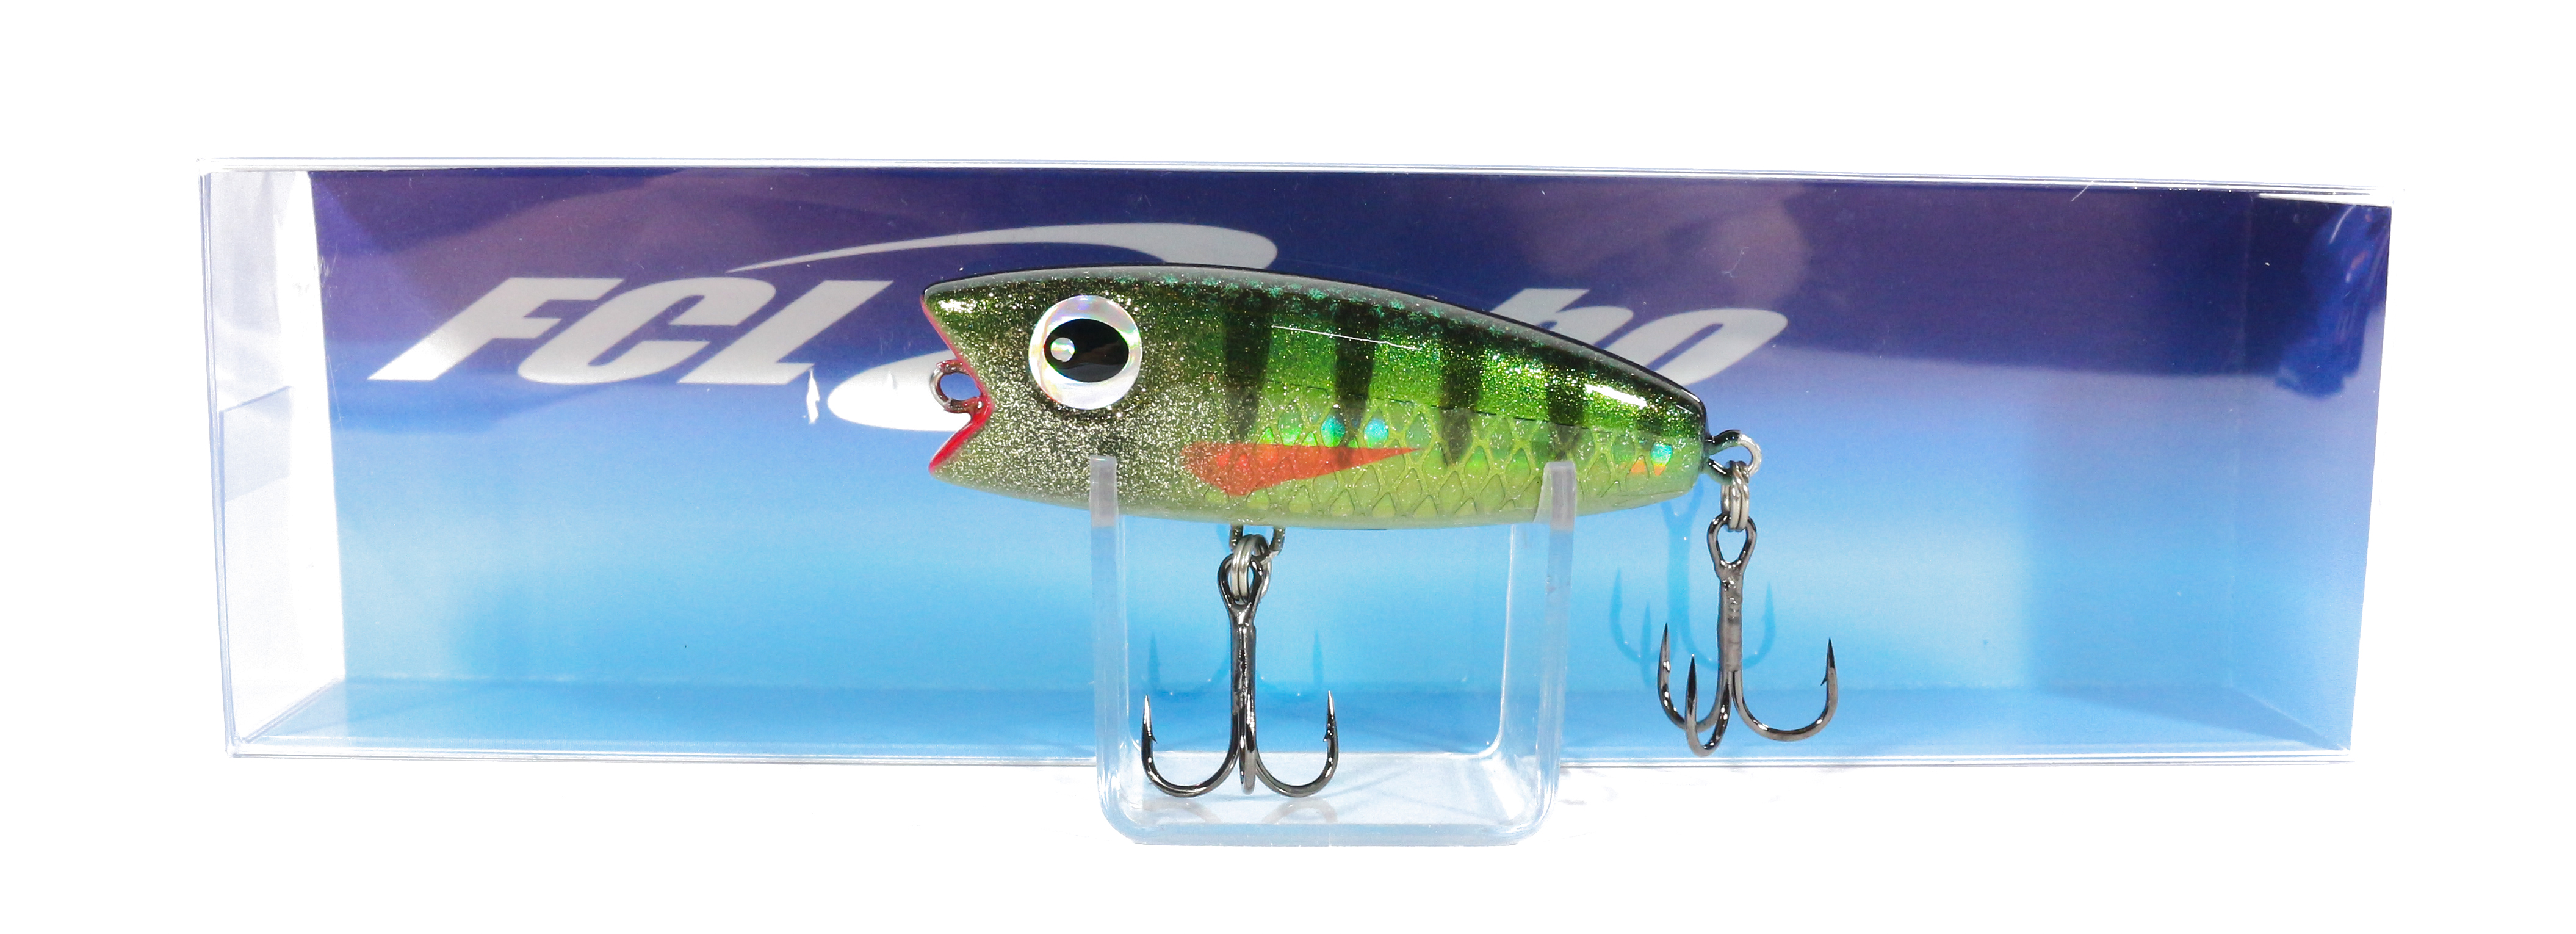 FCL Labo Stick Bait CSP 55 SPF Floating Lure PCH (2455)